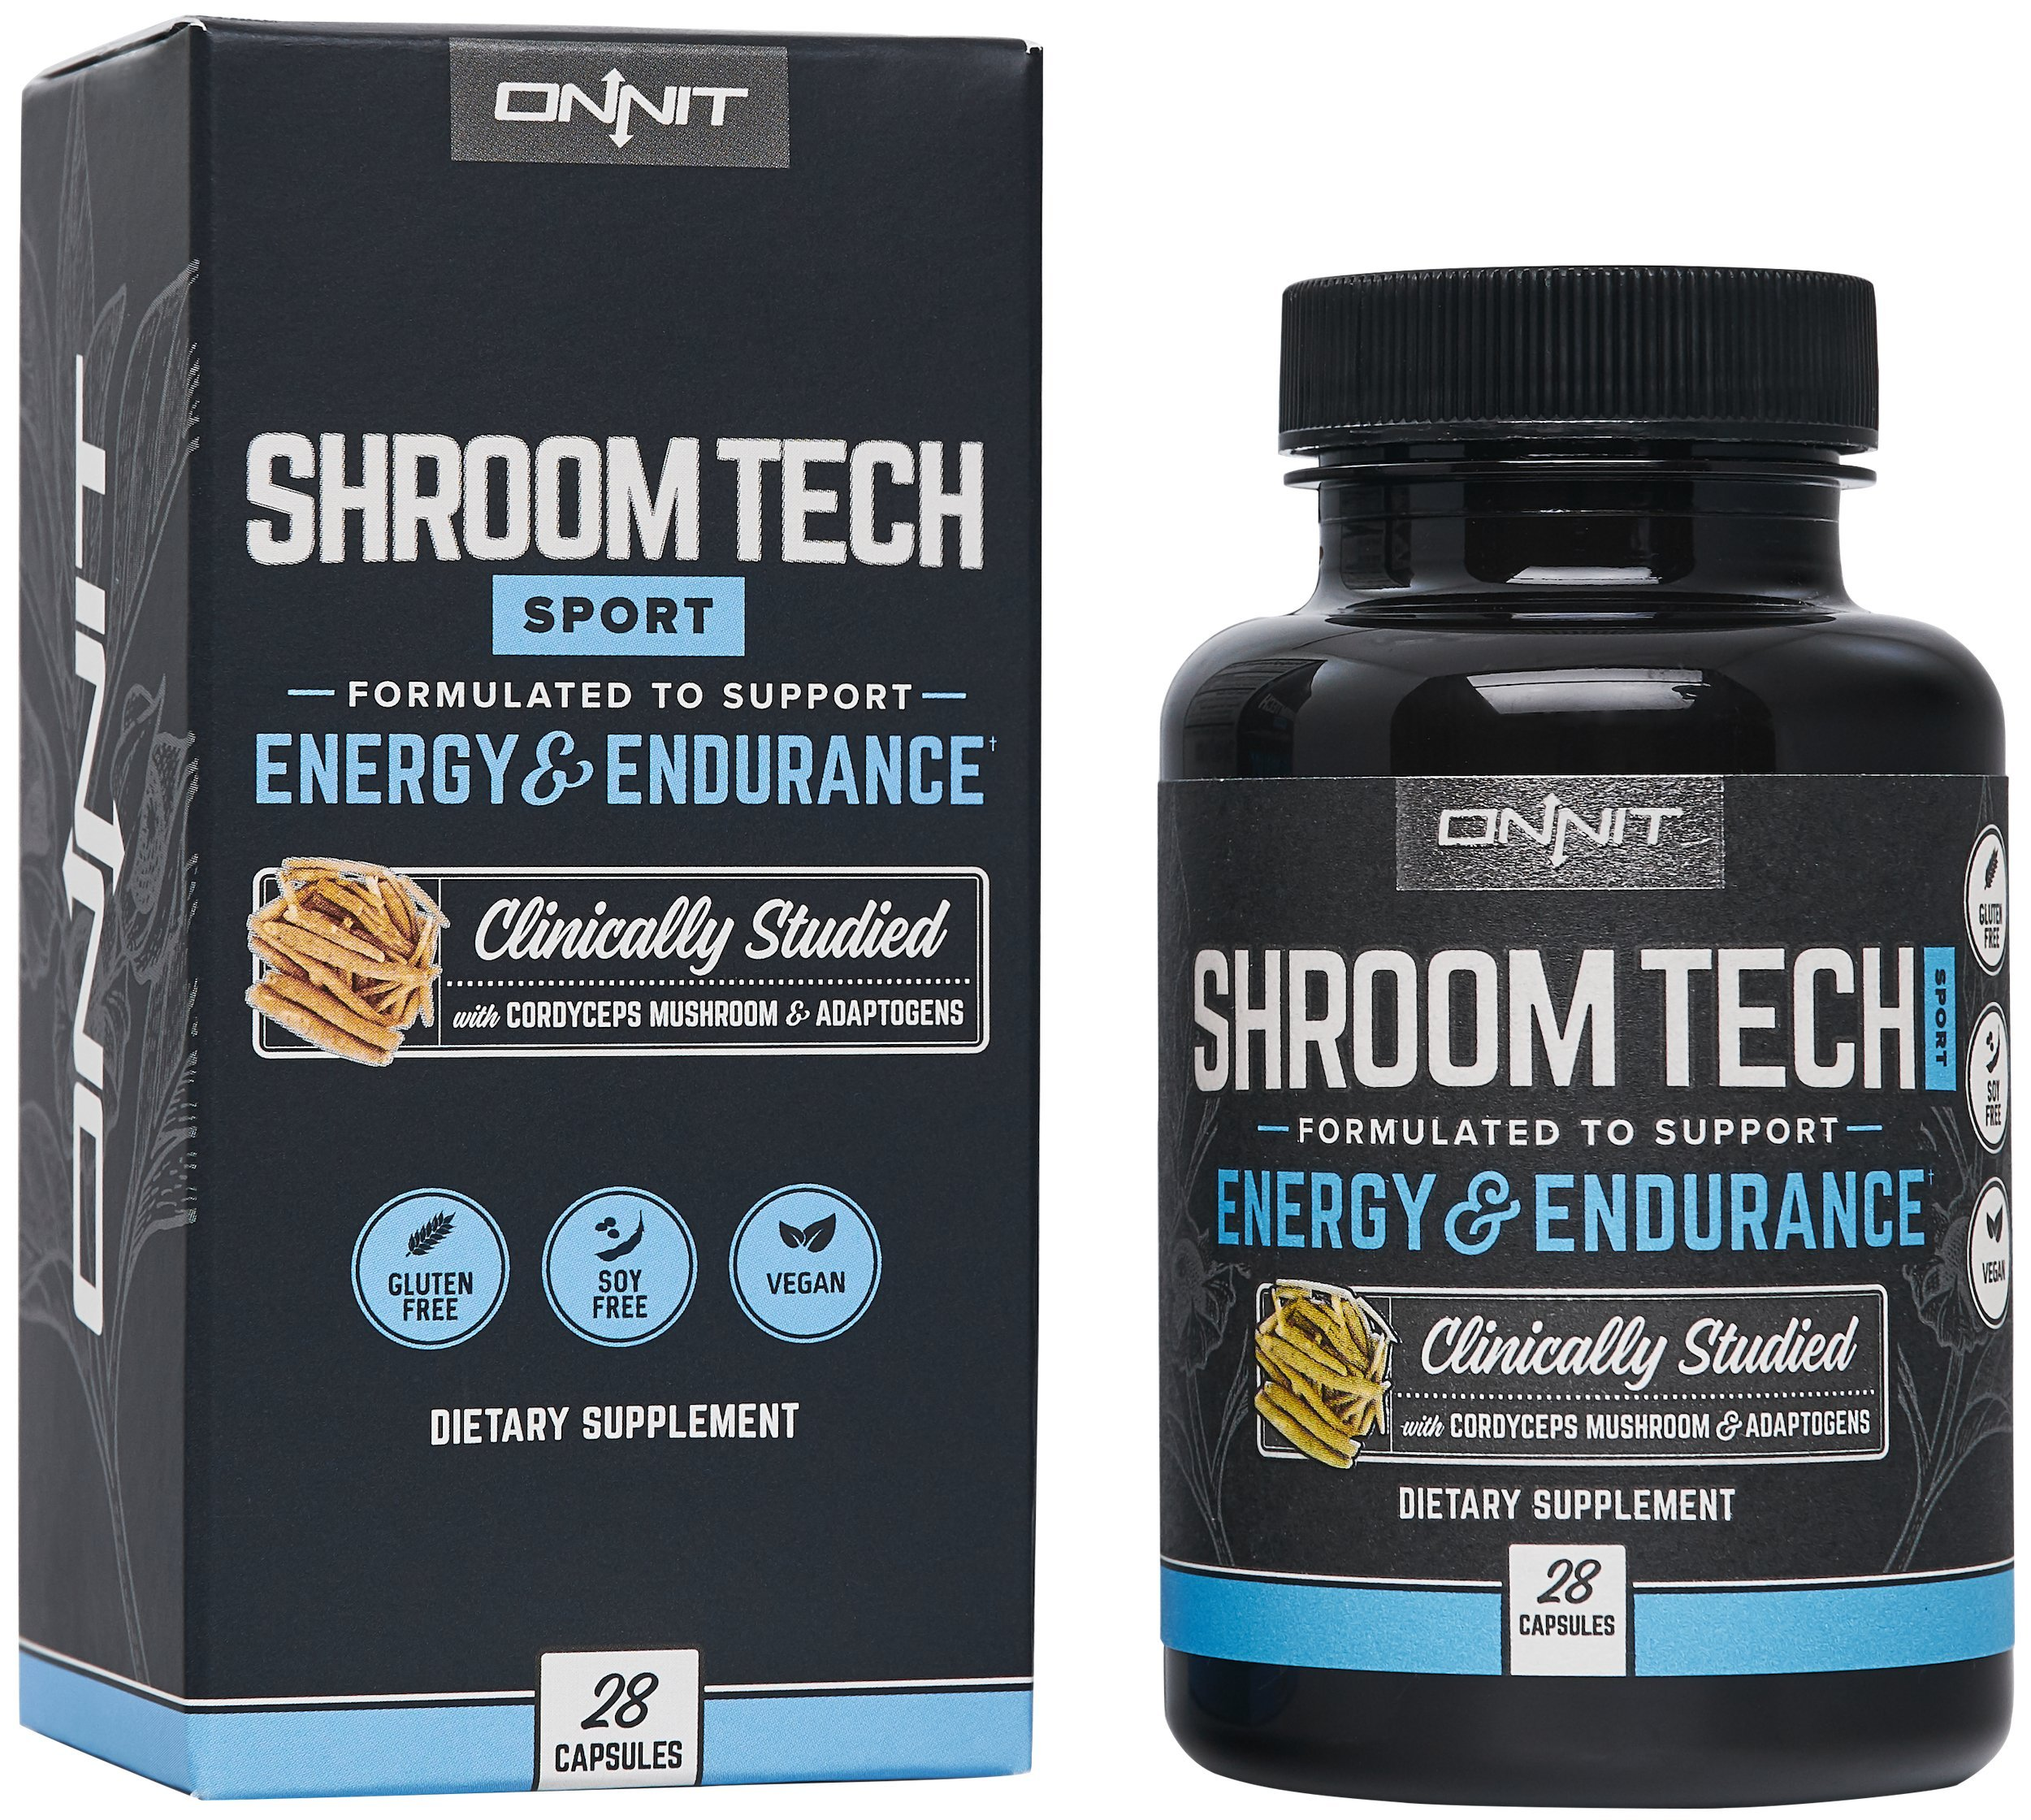 Onnit Shroom Tech Sport: Clinically Studied Preworkout Supplement with Cordyceps Mushroom (28ct) by ONNIT